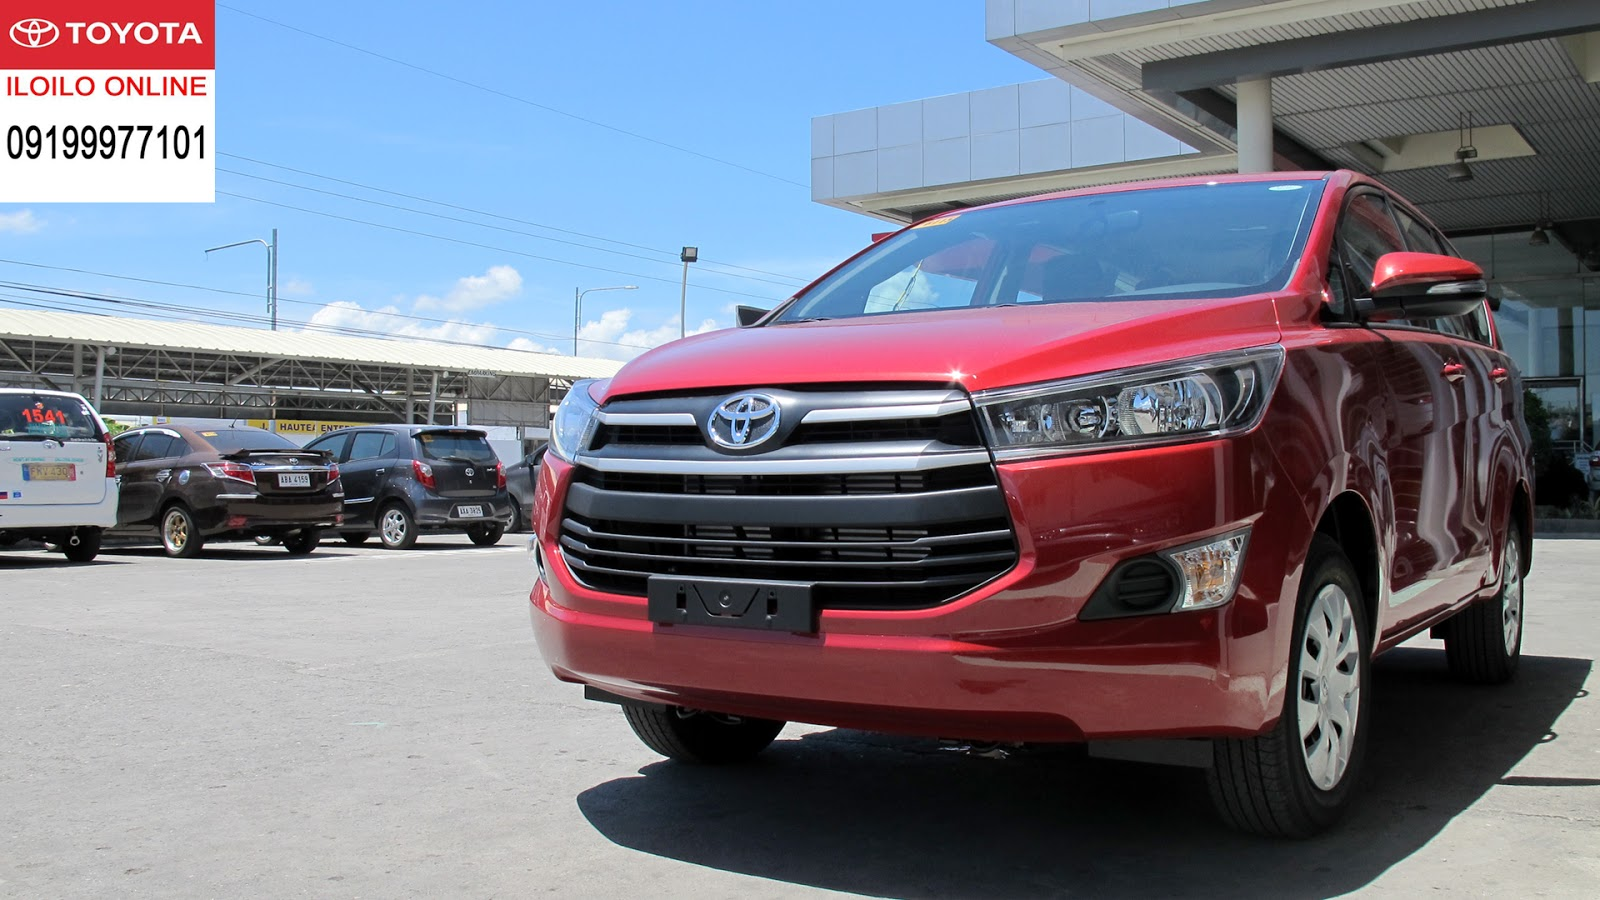 inner grill grand new avanza all camry hybrid toyota iloilo 2018 model rush and low dp grabs top 3 best sellers in the philippines